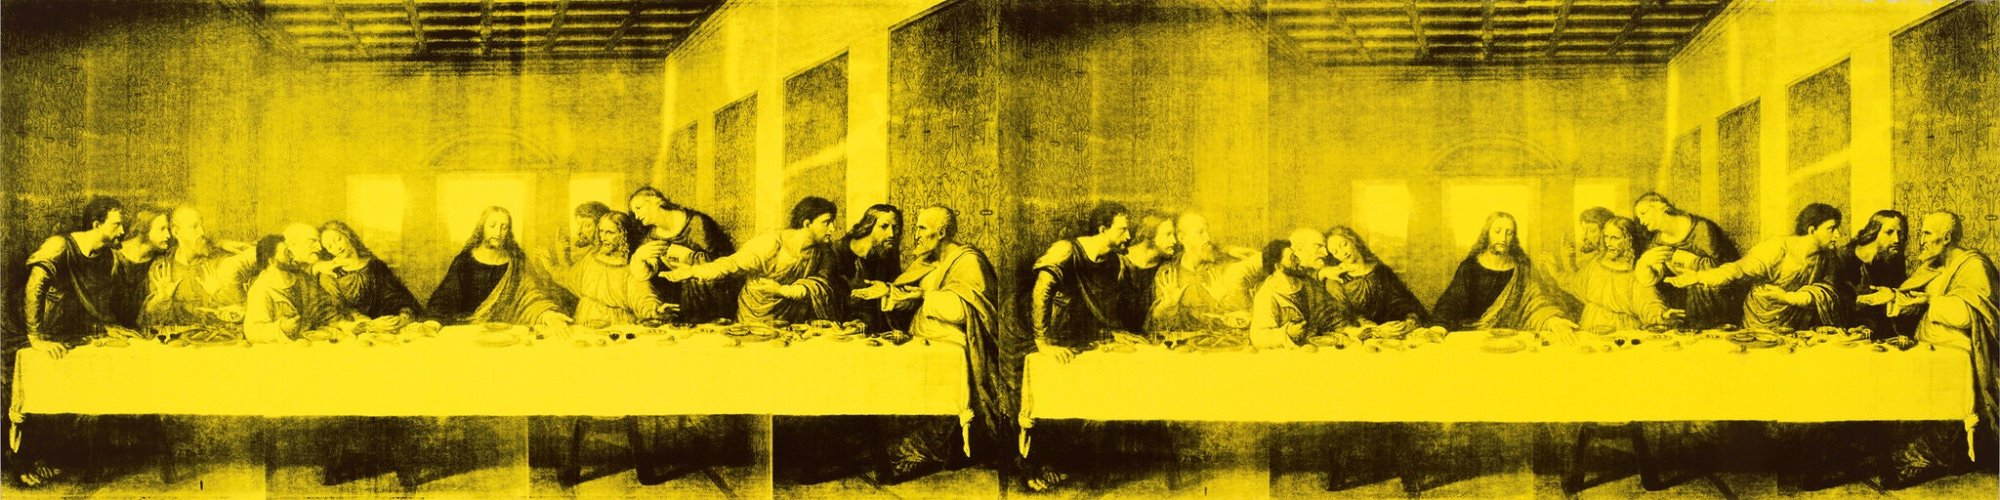 Andy Warhol's 'The Last Supper' (1986) is among the works set to be deaccessioned by the Baltimore Museum of Art.